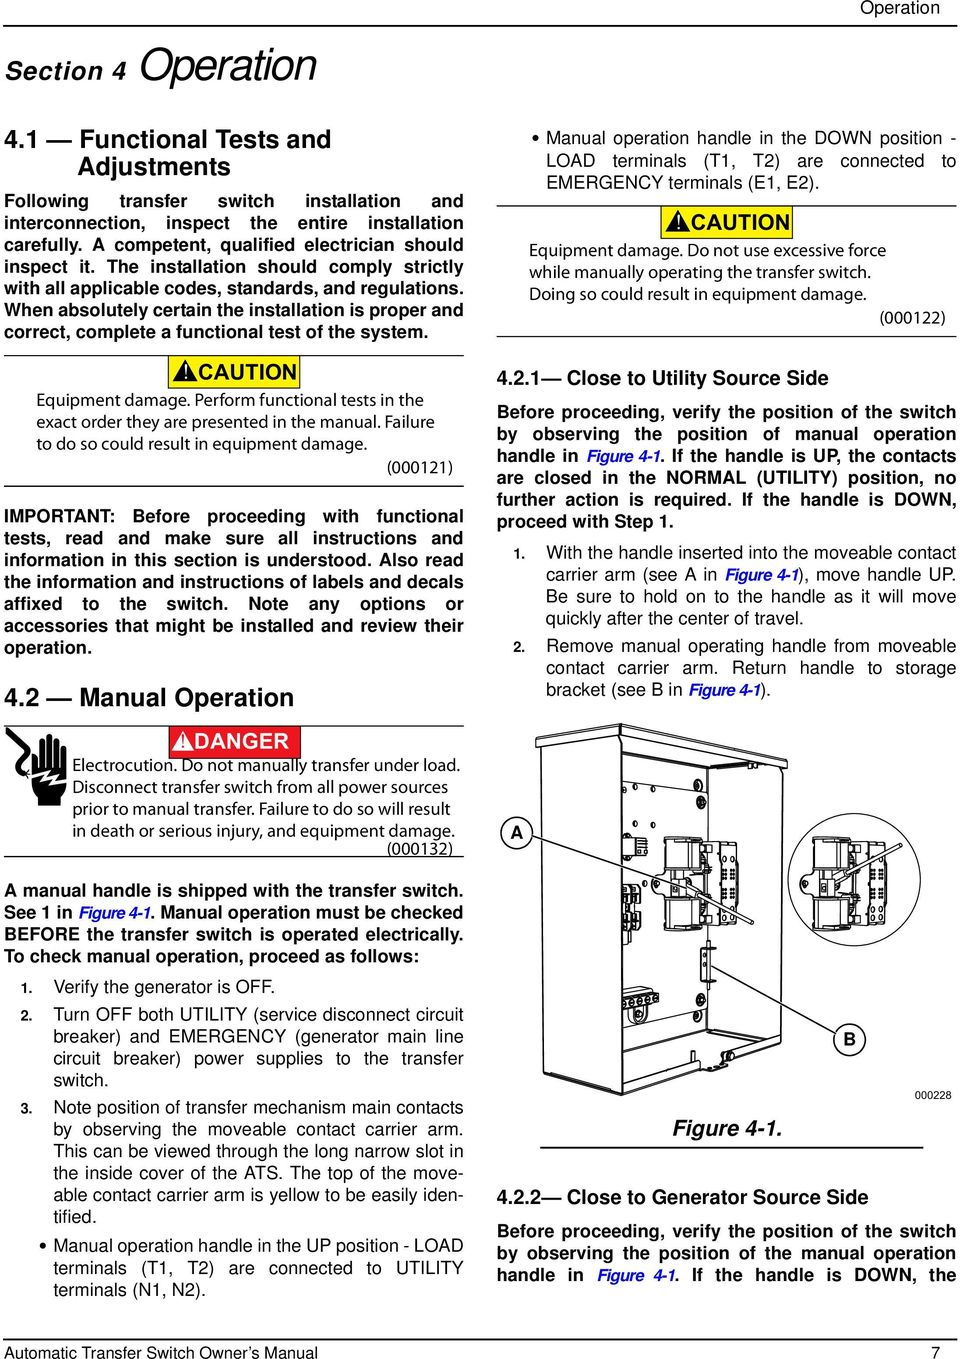 Owner S Manual For Automatic Transfer Switch Amp Service Entrance Generator Wiring On Position 7 When Absolutely Certain The Installation Is Proper And Correct Complete A Functional Test Of